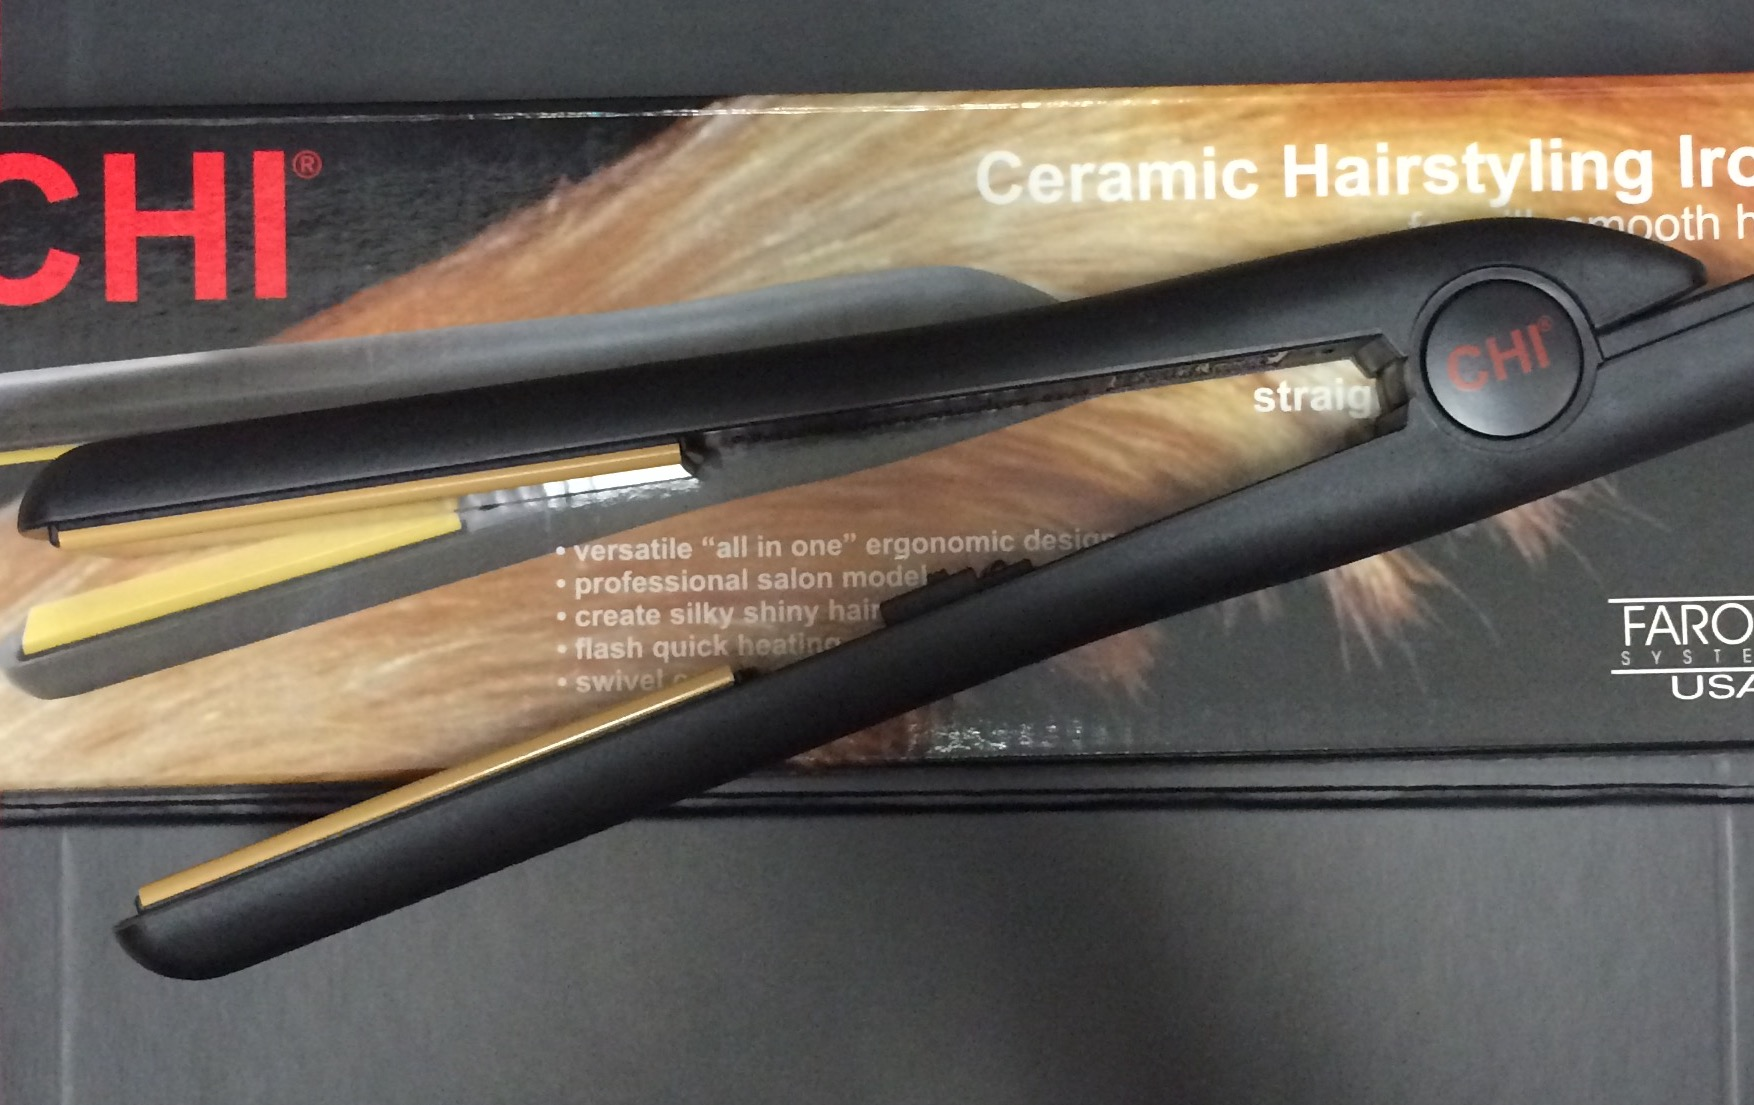 Chi Ceramic Hairstyling Flat Iron